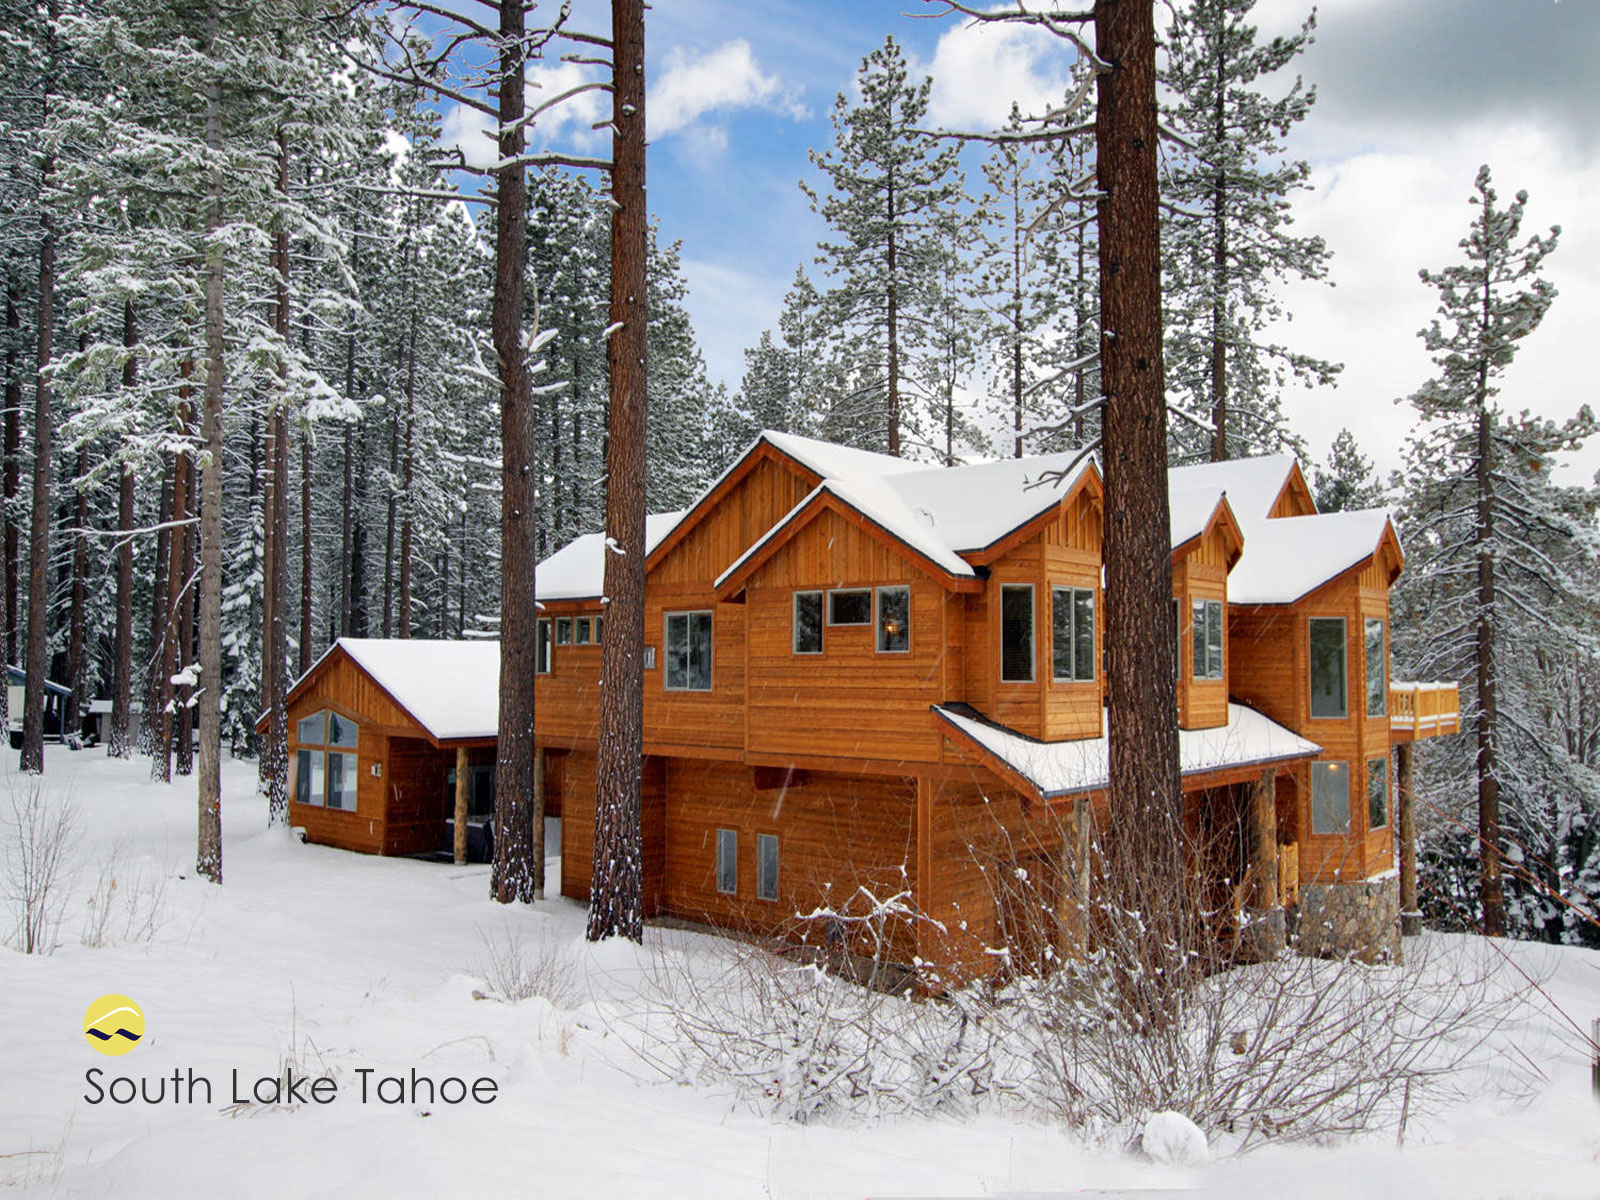 South Lake Tahoe Homes for Rent